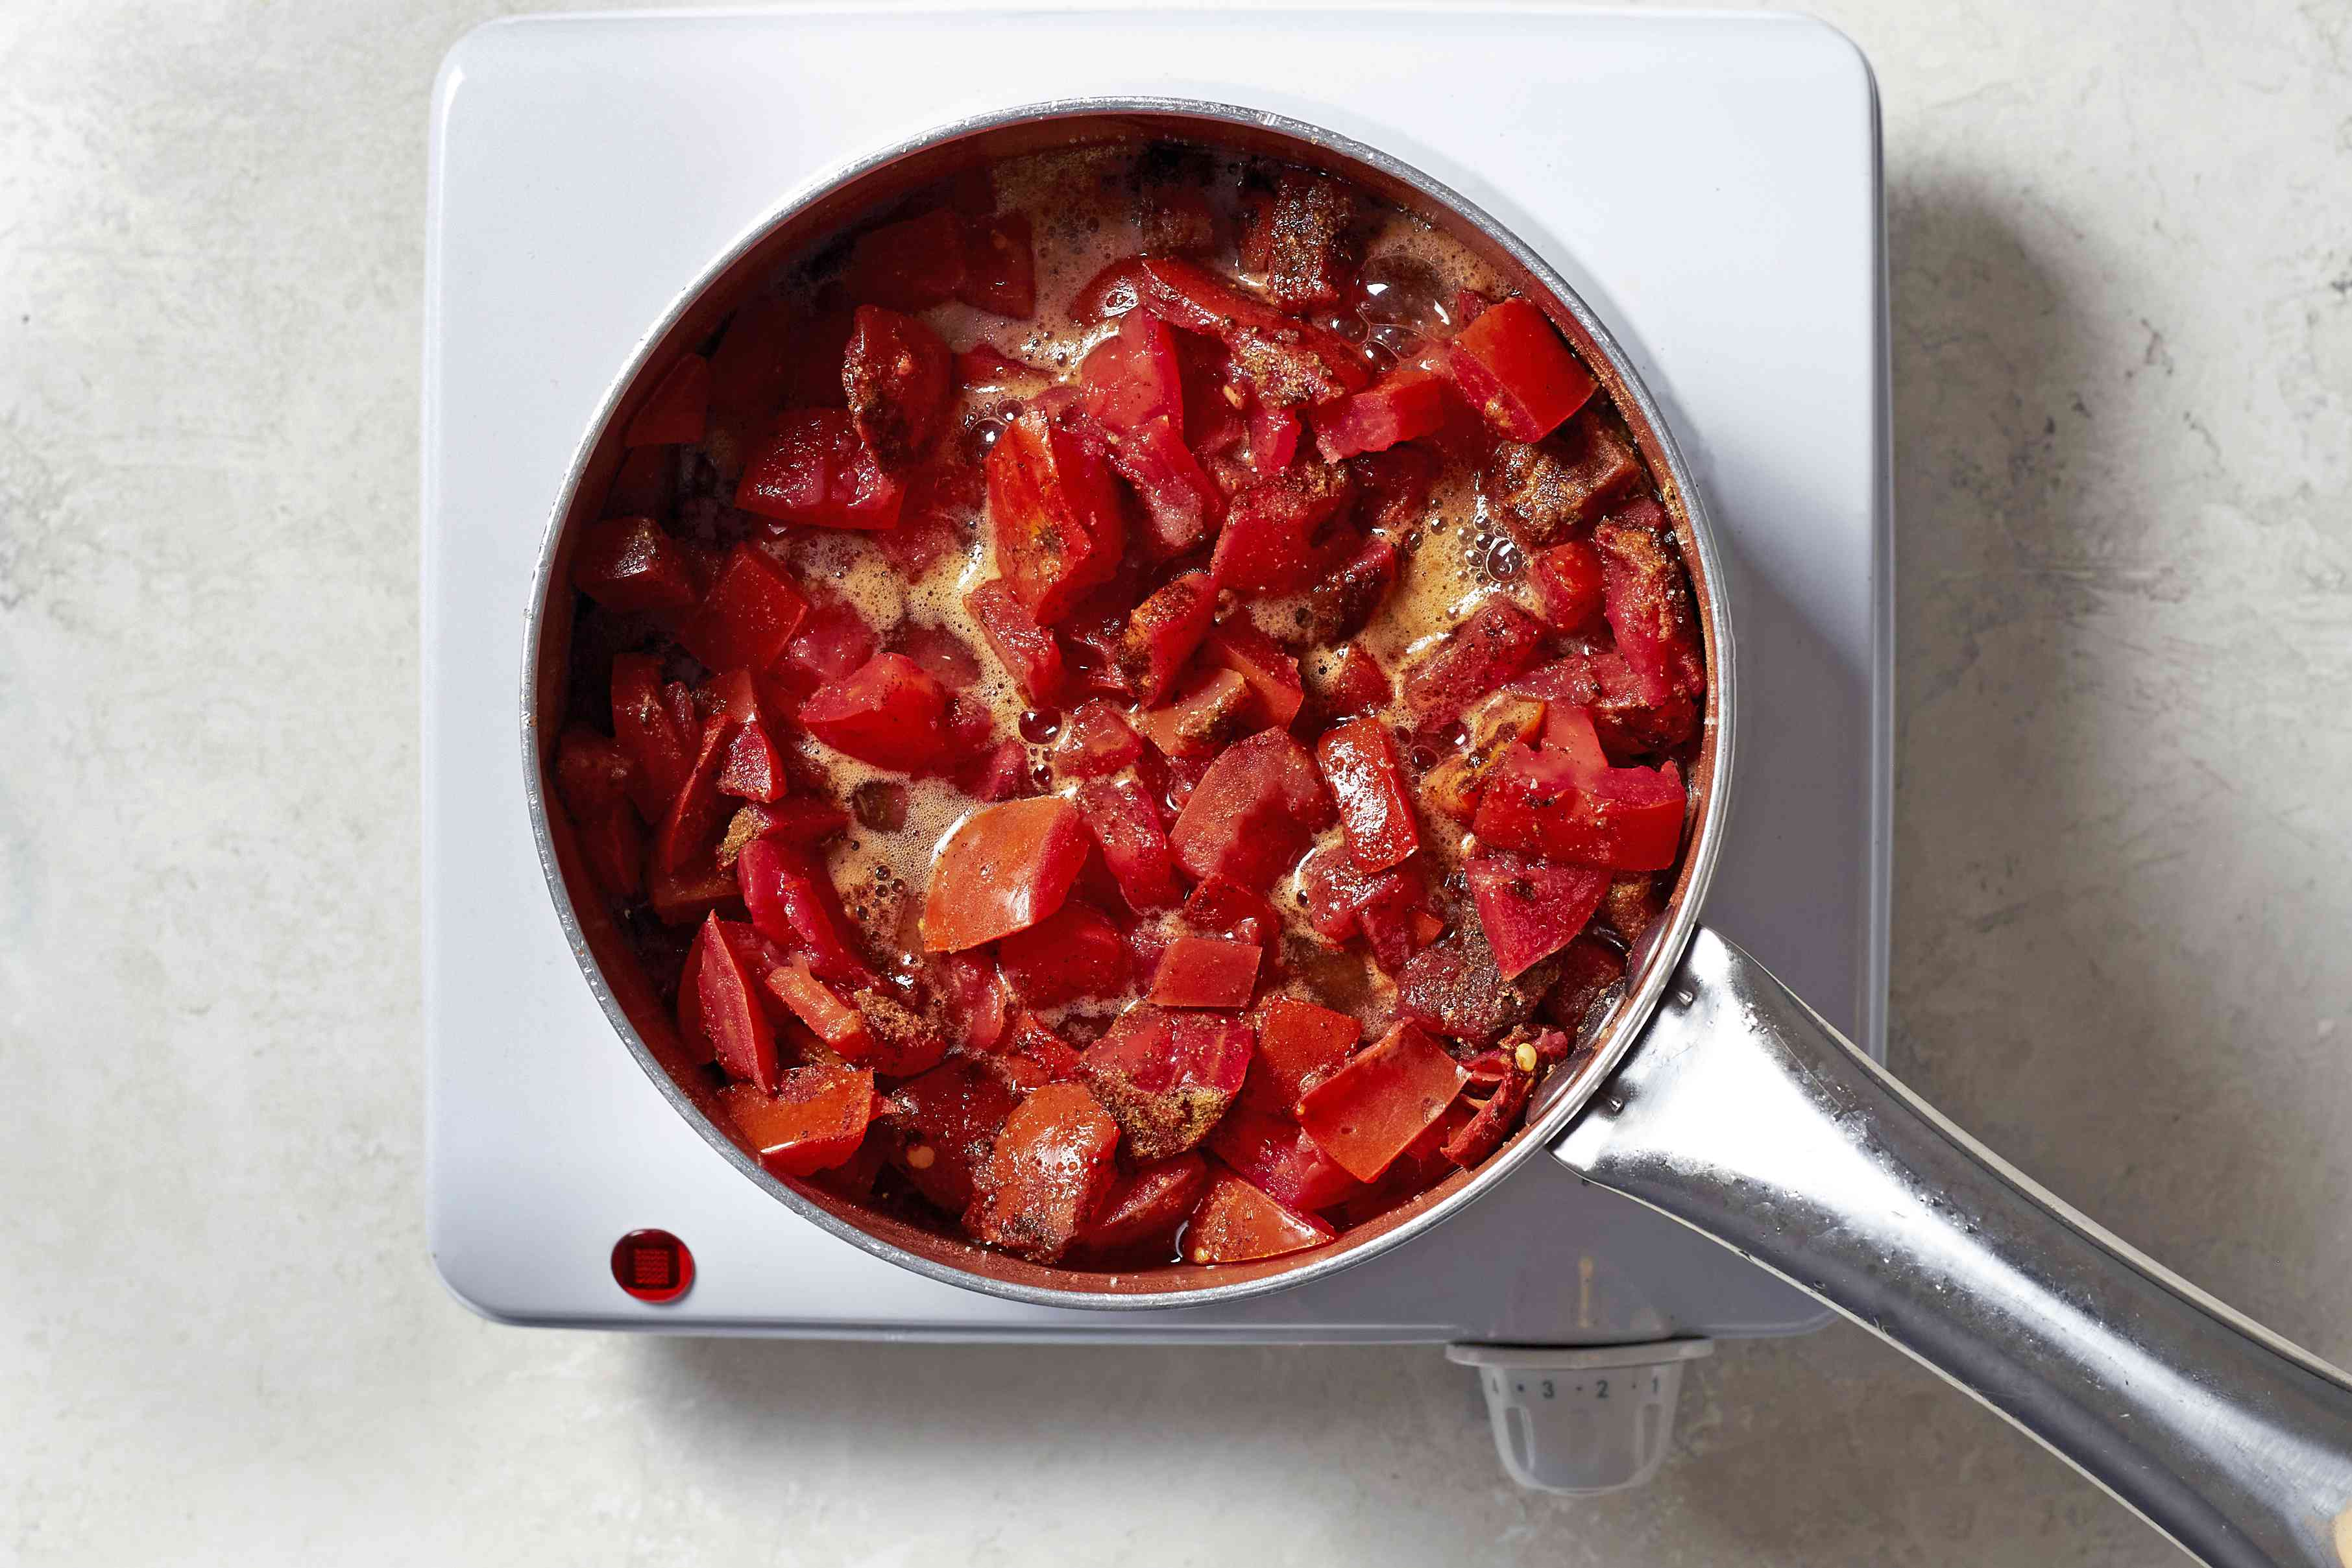 Combine the tomatoes, spices, sugar, pepper flakes, and lemon juice in a saucepan